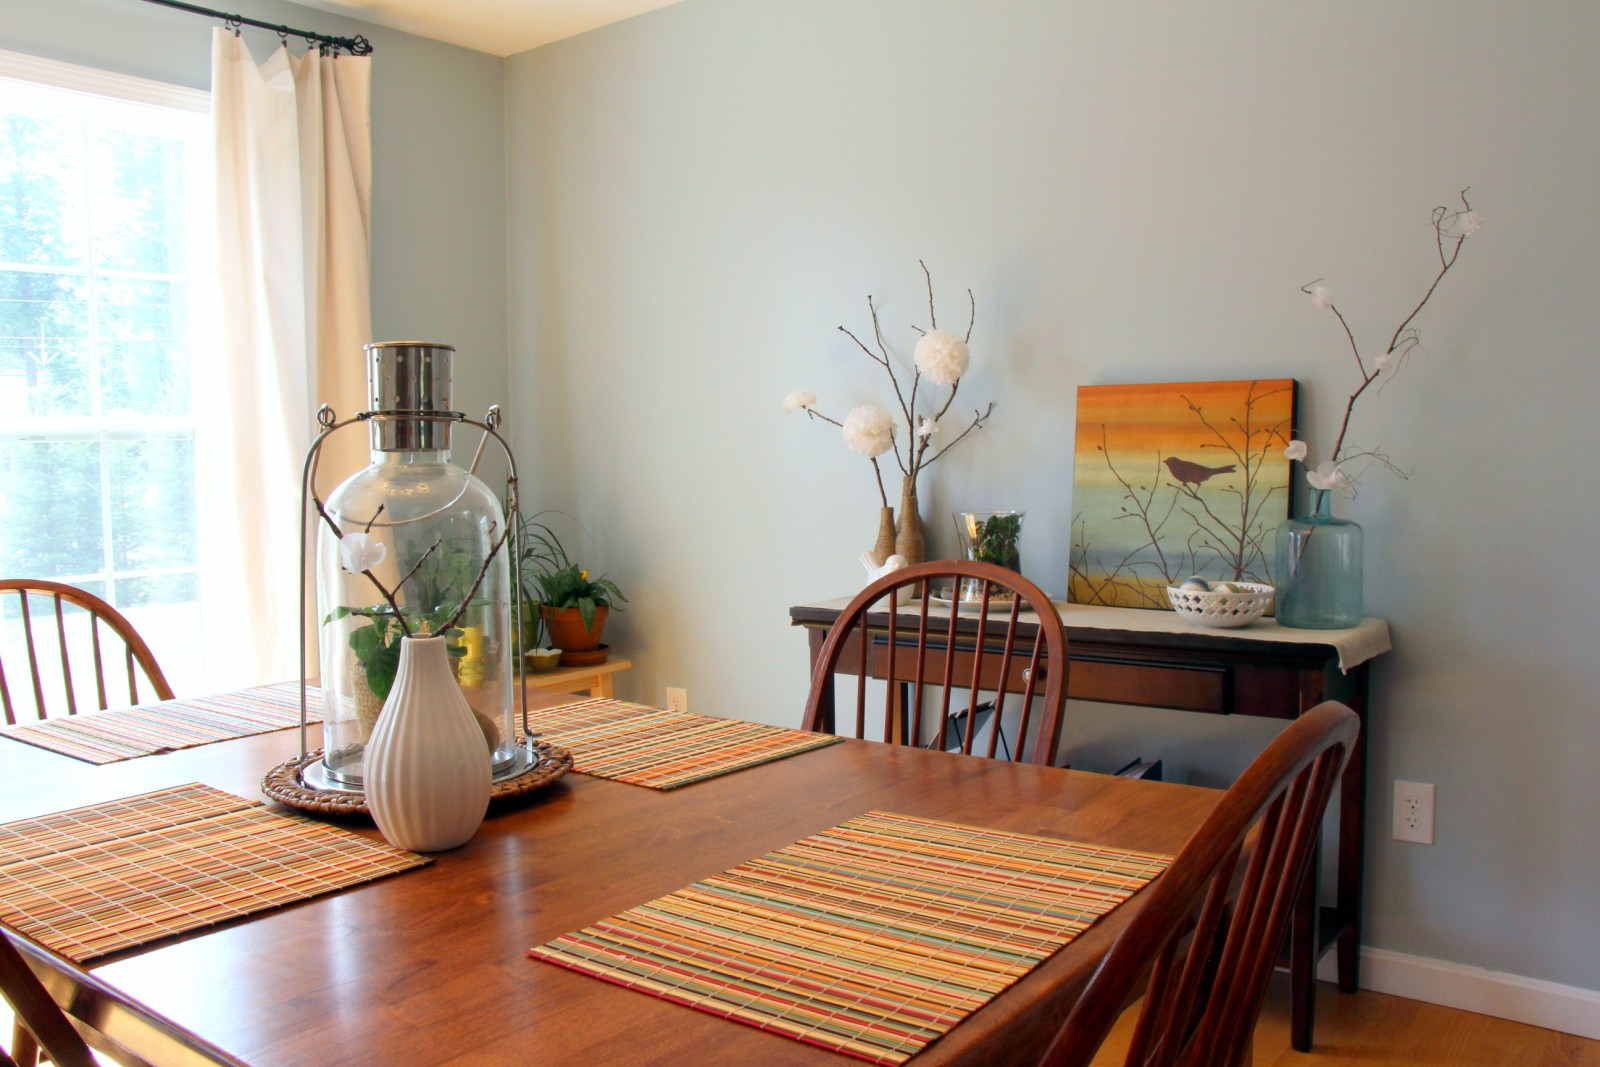 Heart Maine Home Spring Decor With Natural Elements And